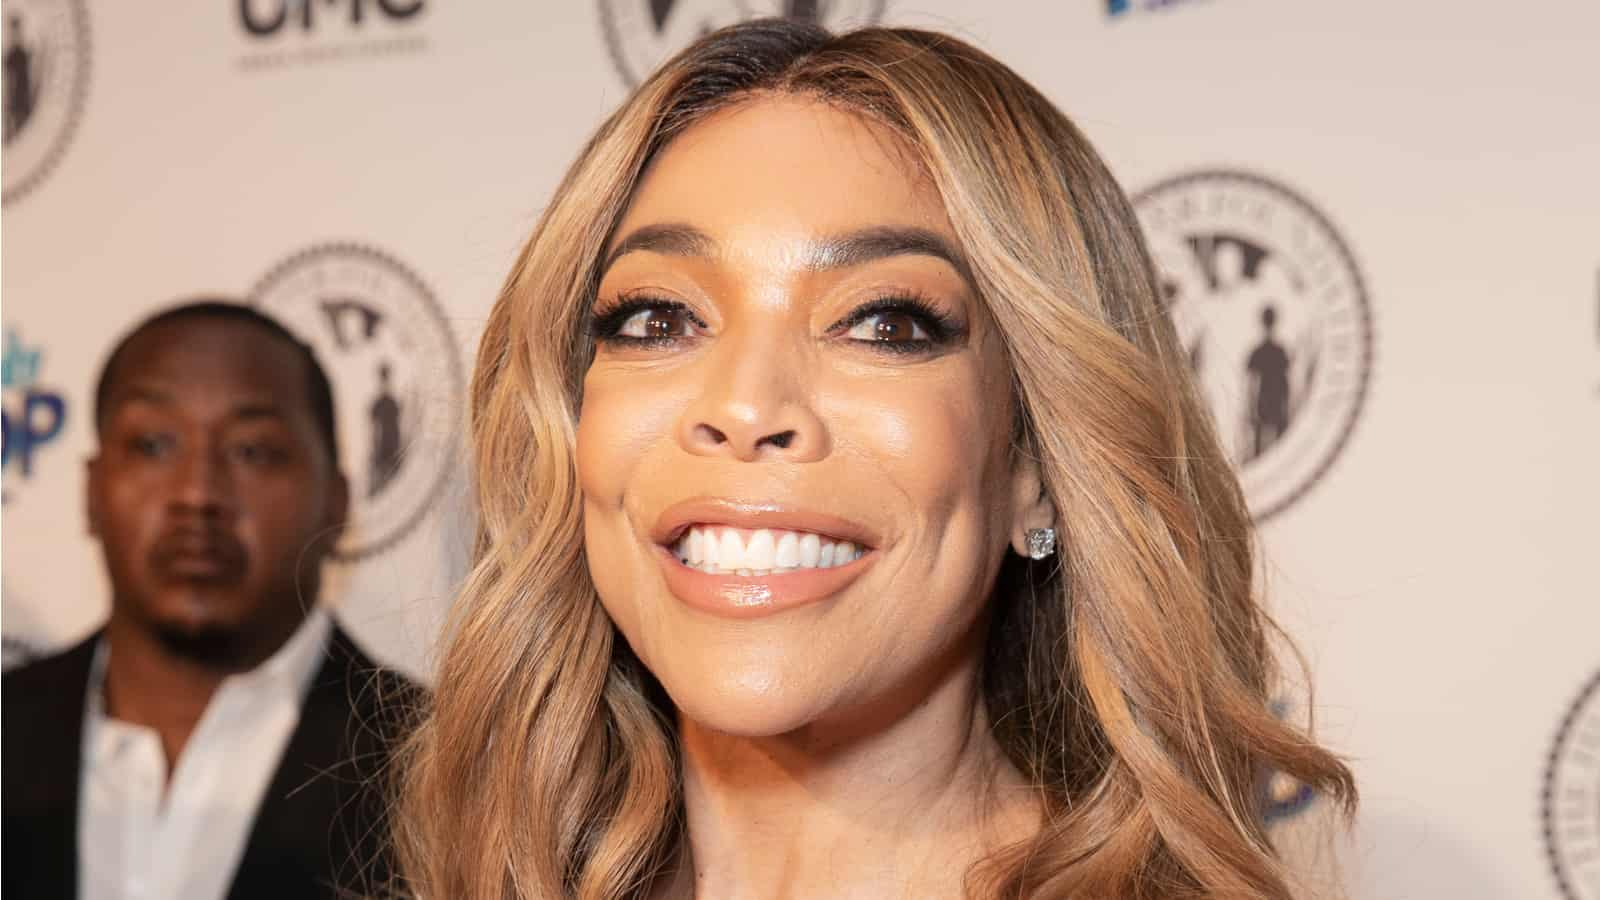 Wendy Williams' Show Has Been Renewed For Two More Seasons Following Her Health-Related Issues